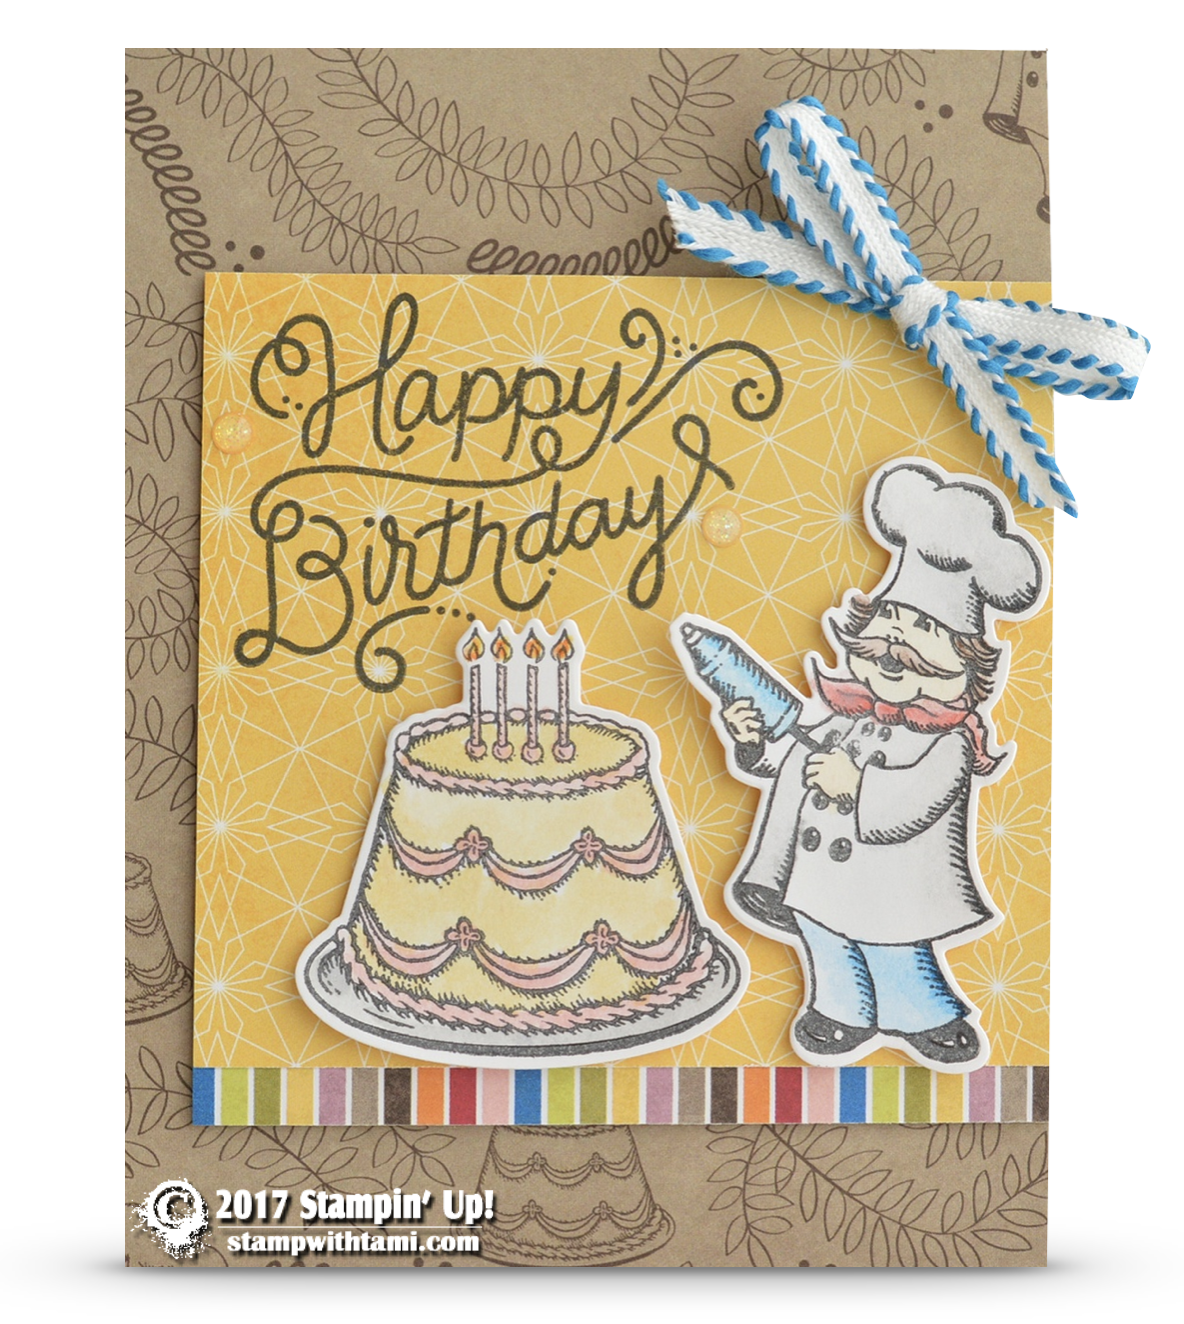 Remarkable Card Happy Birthday Delivery Chef Card Part 1 Of 2 Funny Birthday Cards Online Chimdamsfinfo